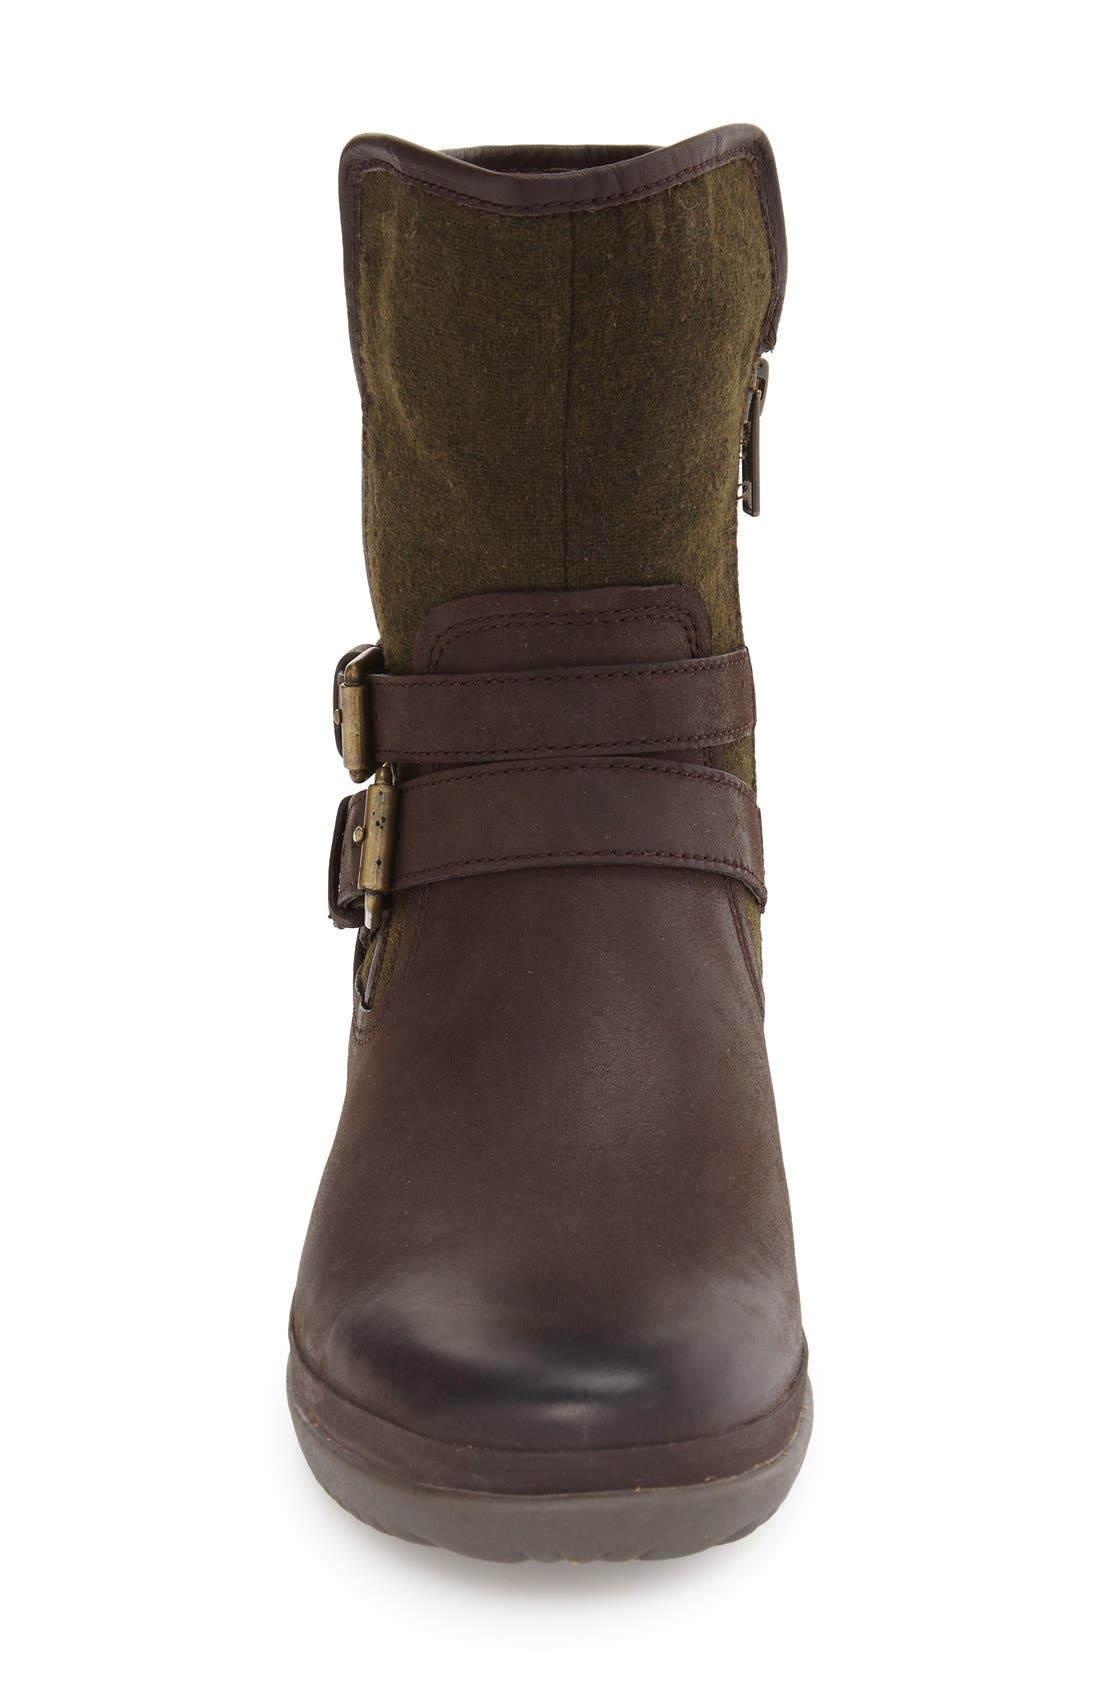 Simmens Waterproof Leather Boot,                             Alternate thumbnail 2, color,                             STOUT WOOL